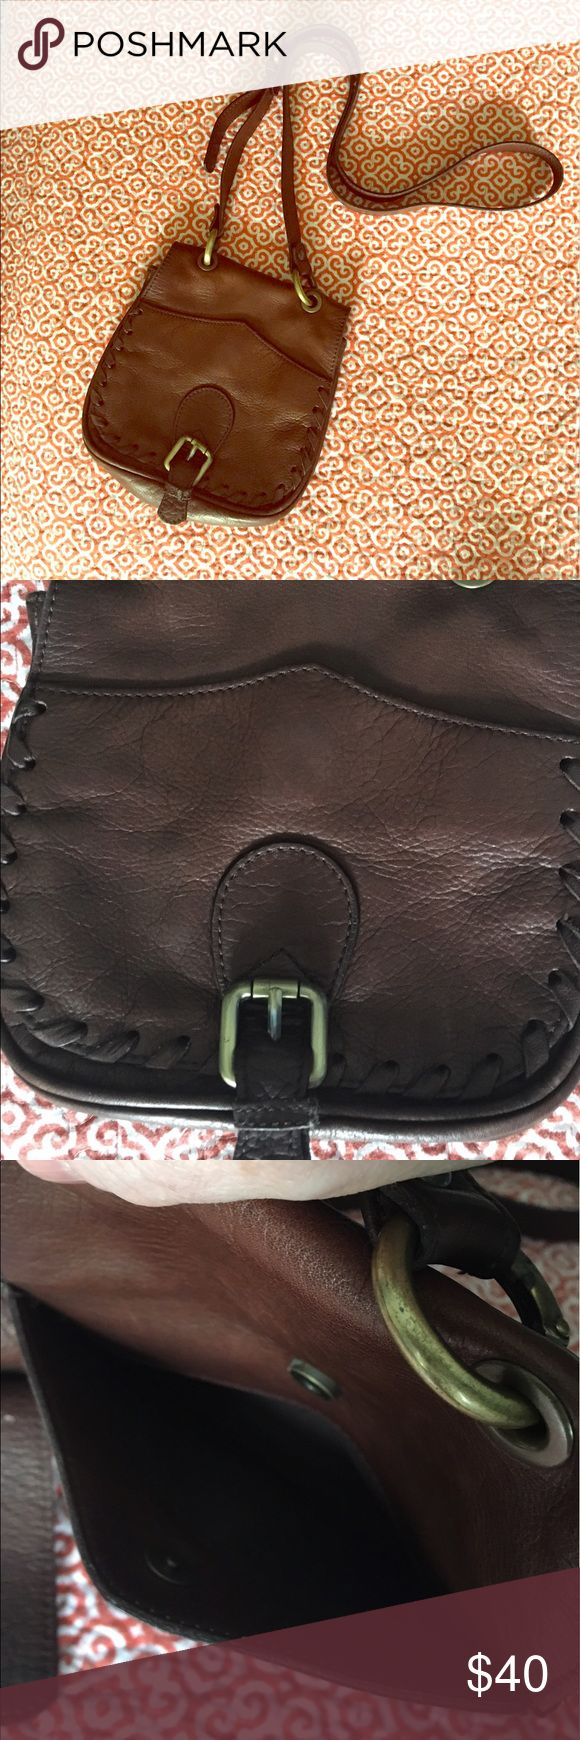 "Massimo Dutti Leather Cross-body Purse Nice buttery soft brown leather bag. Measures approximately 7""x7.5""x2"" with a strap drop of 23.5"" Massimo Dutti Bags Crossbody Bags"